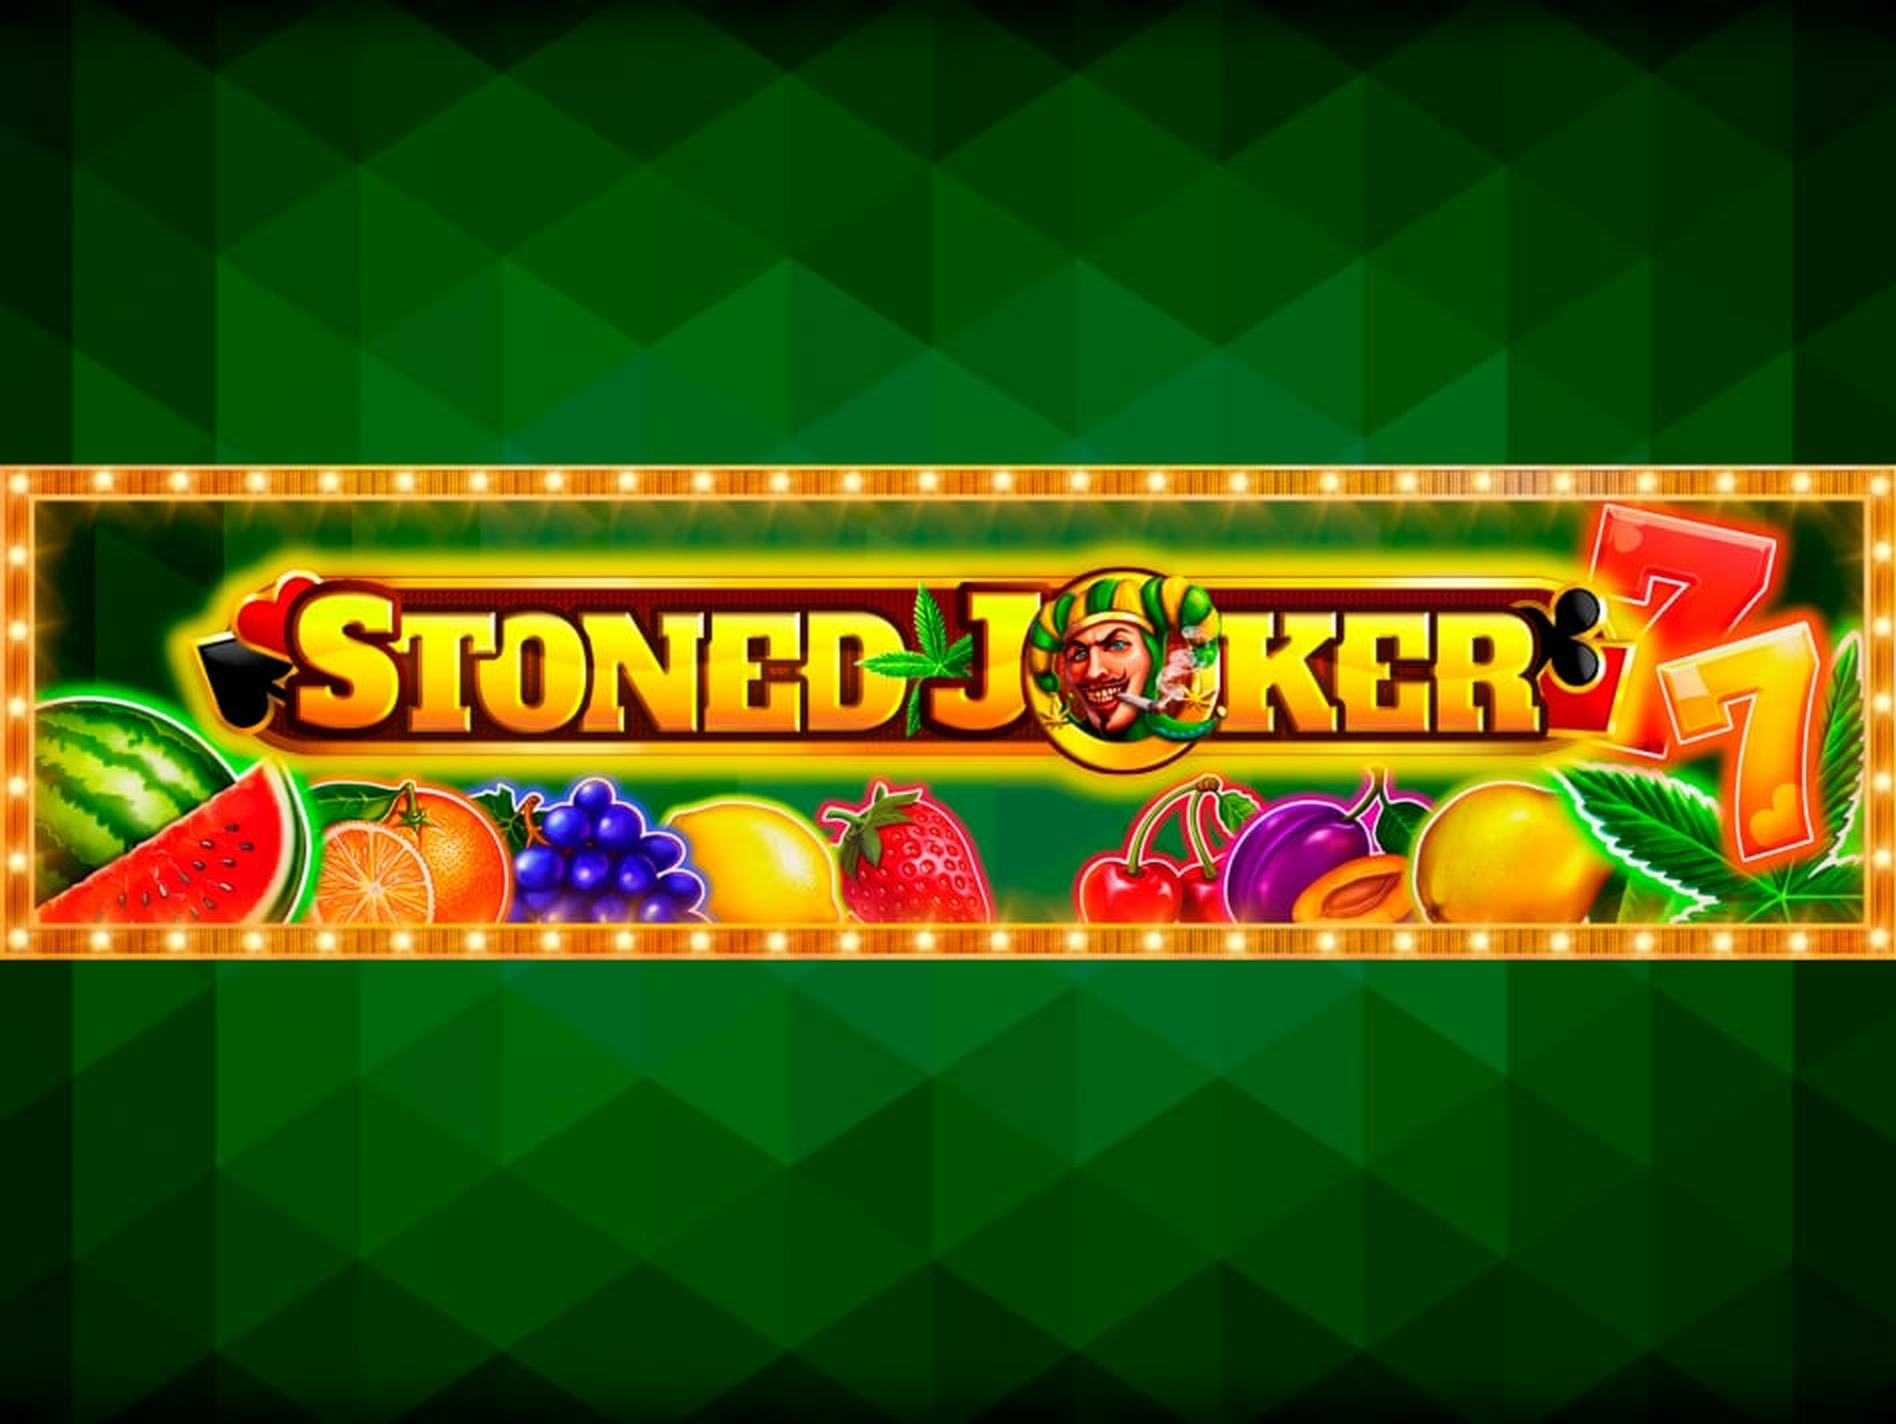 The Stoned Joker 40 Online Slot Demo Game by Fugaso